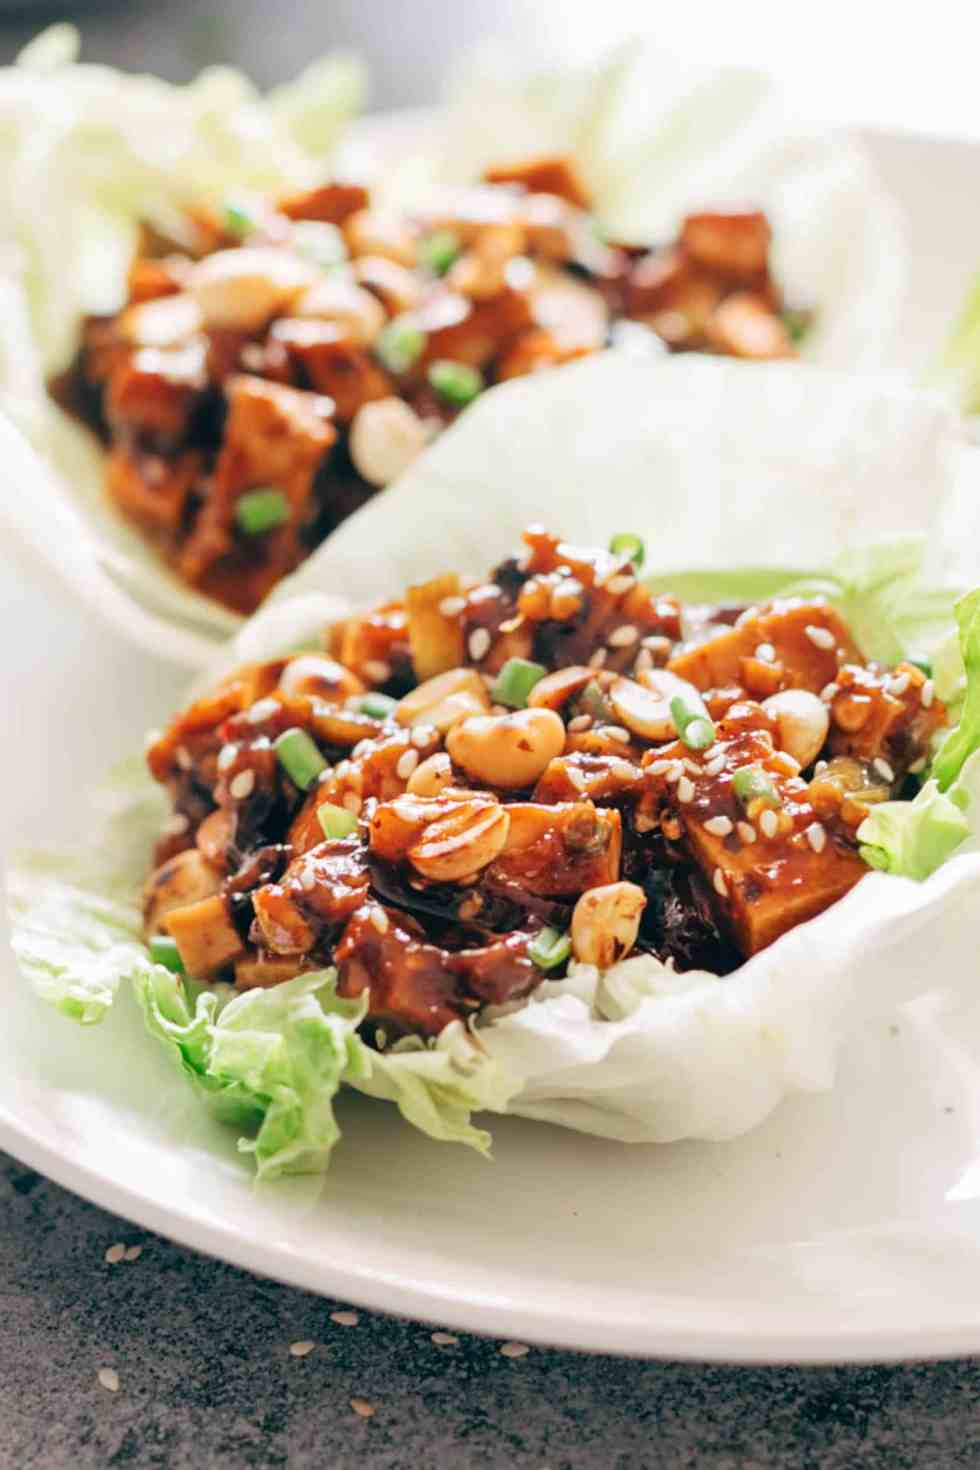 These vegetarian mapo tofu lettuce wraps double up as appetizer and dinner and use shiitake mushrooms instead of pork for that same great taste! Vegan and Gluten Free too.